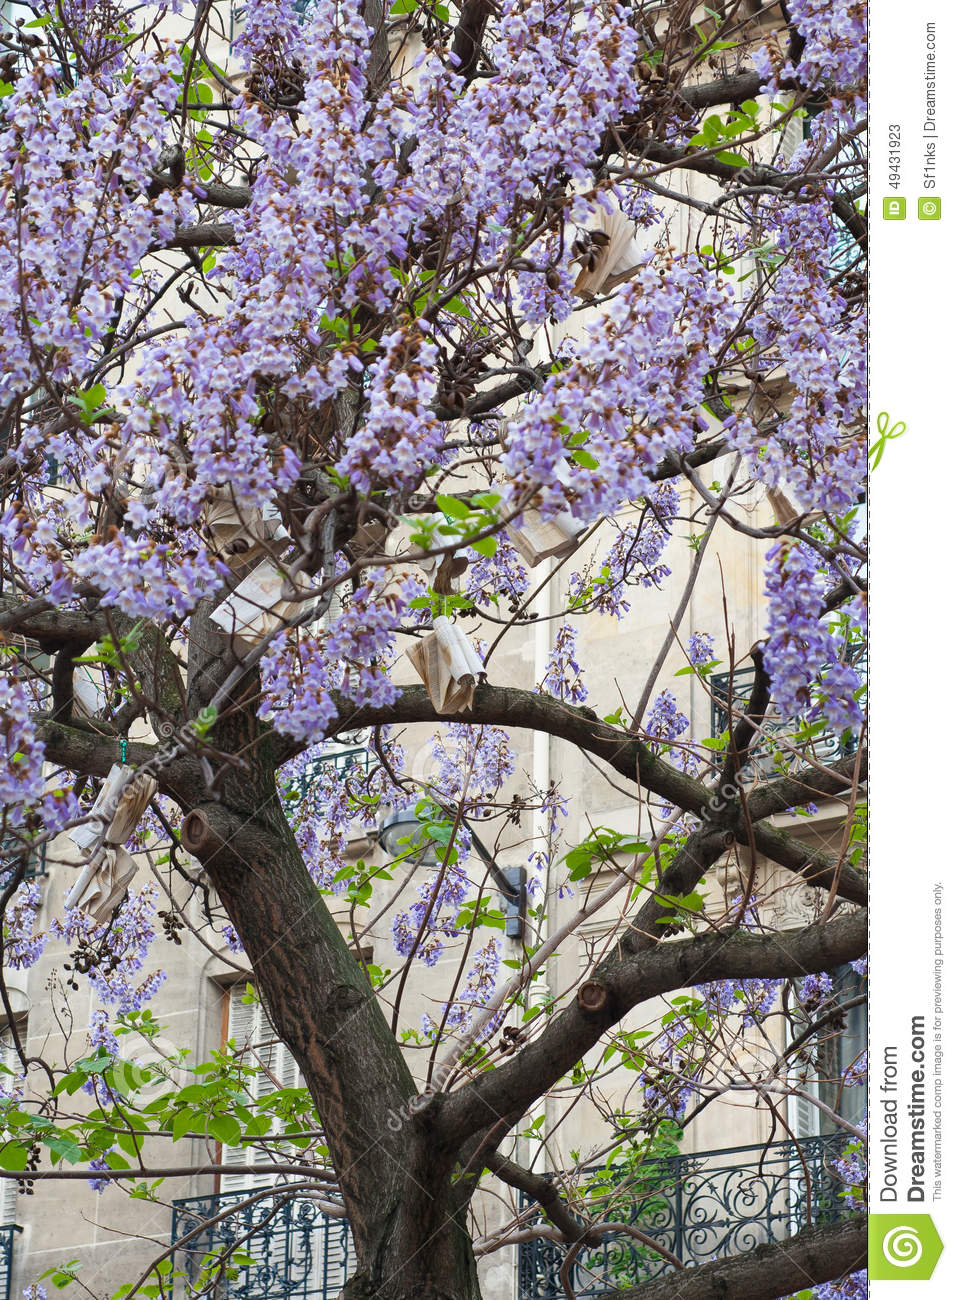 Book hang on tree with blue flowers france paris stock image book hang on tree with blue flowers france paris izmirmasajfo